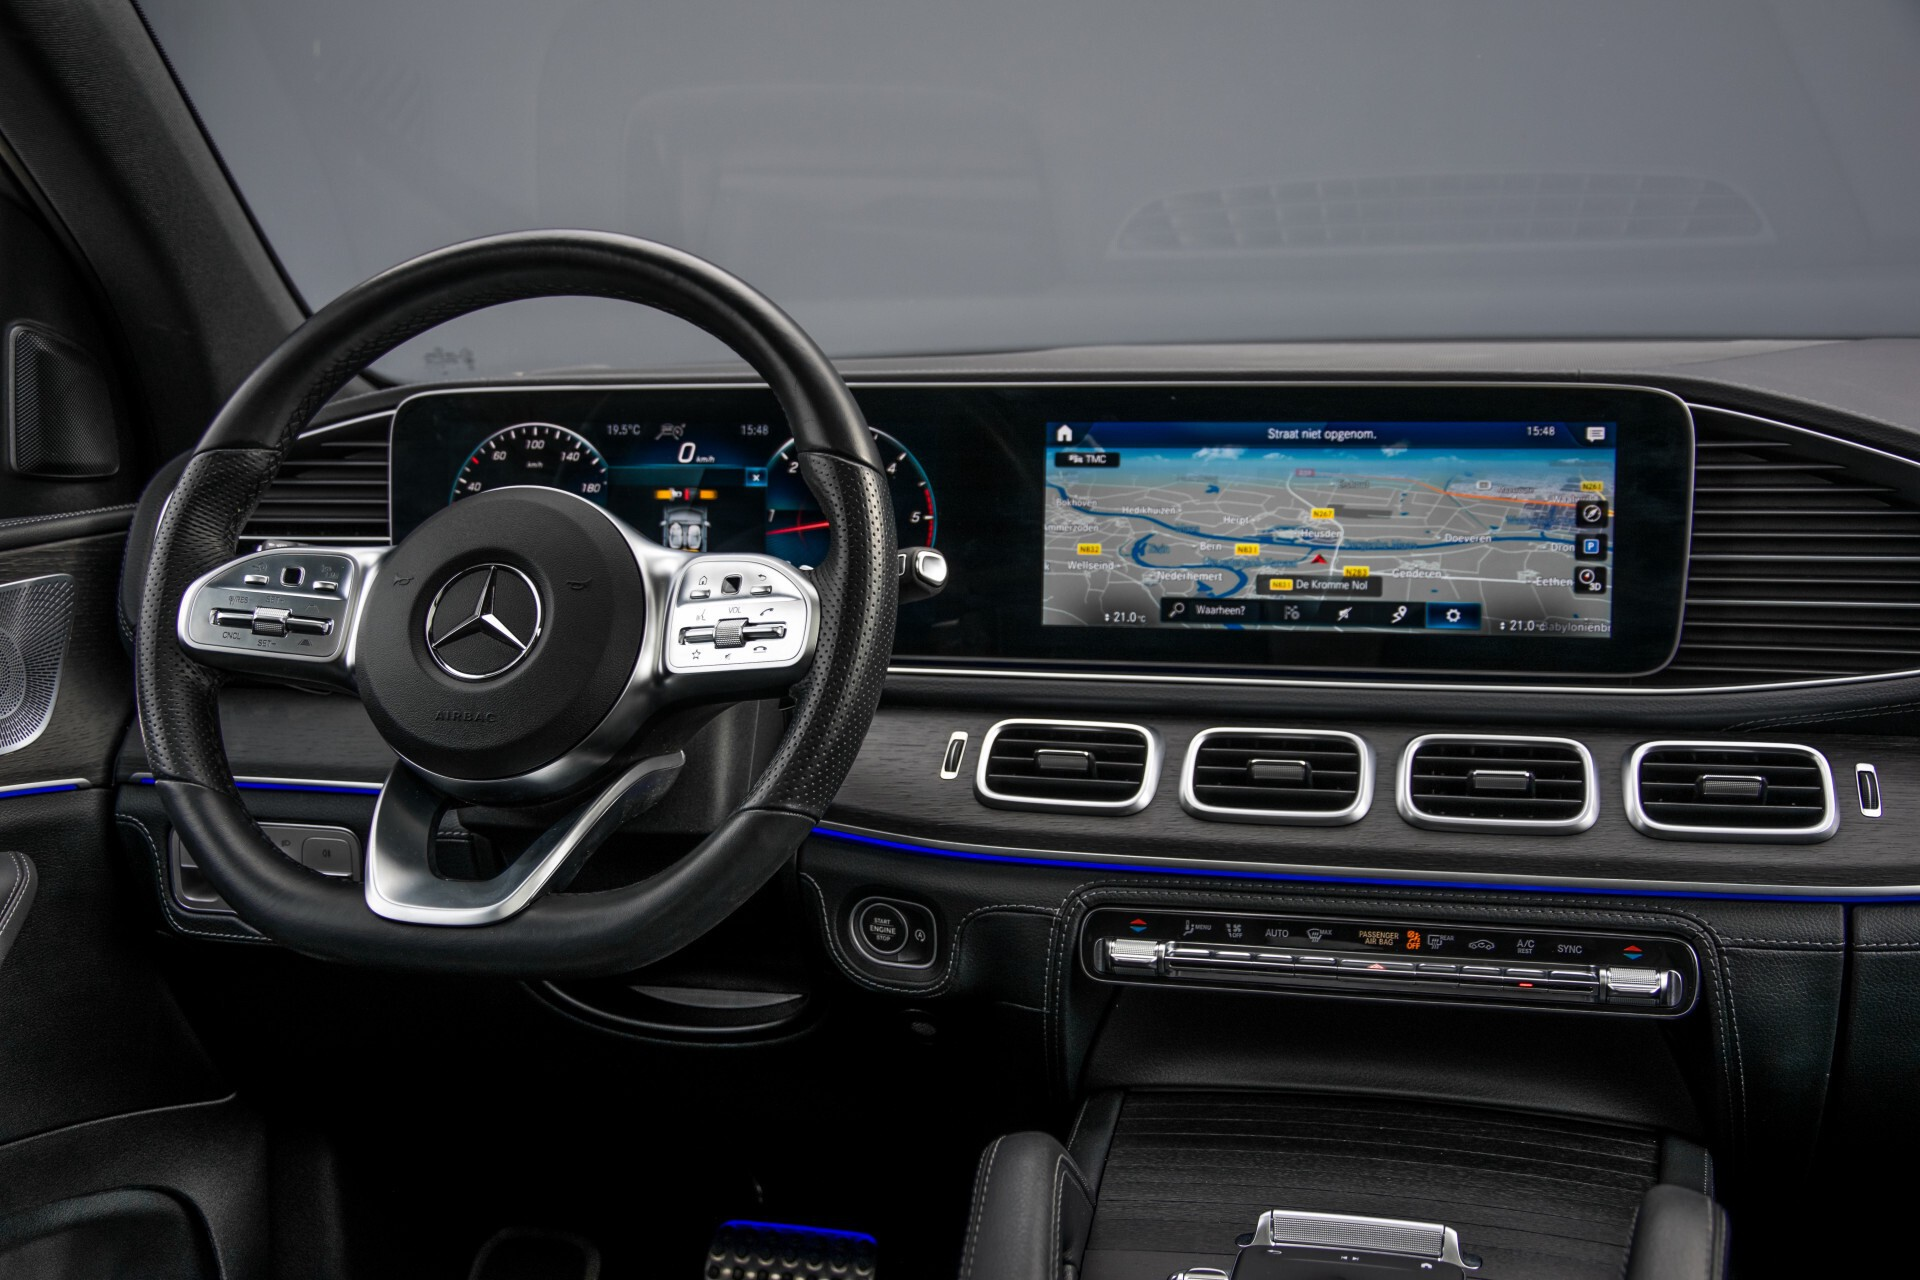 Mercedes-Benz GLE 400 d 4-M Luchtvering/Distronic/Keyless/HUD/Burmester/Nappa/360 camera/Panorama Aut9 Foto 7